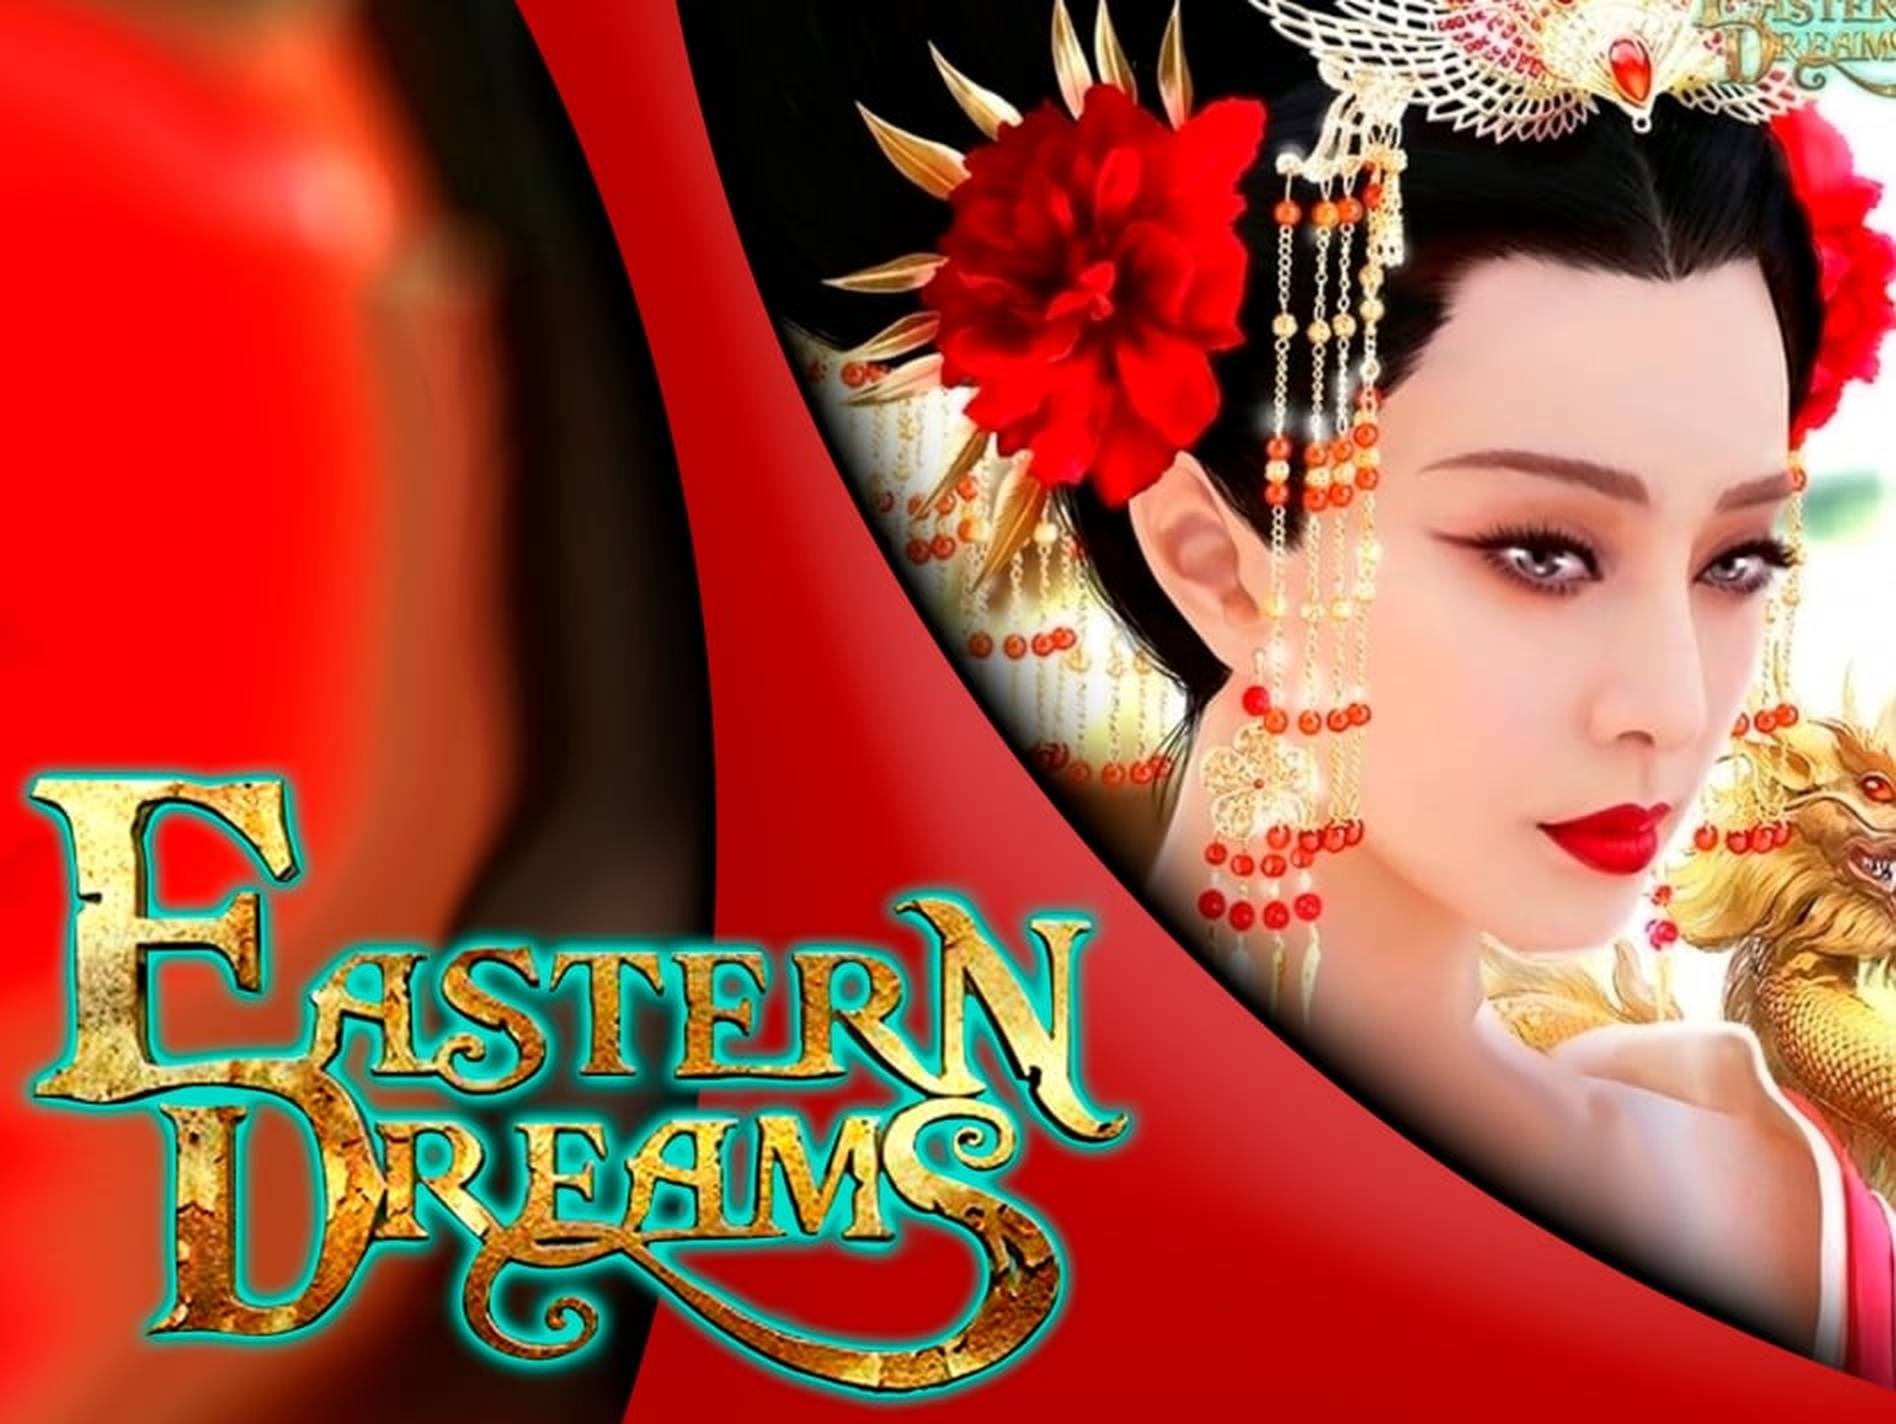 Se Eastern Dreams Online Slot Demo Game, R. Franco